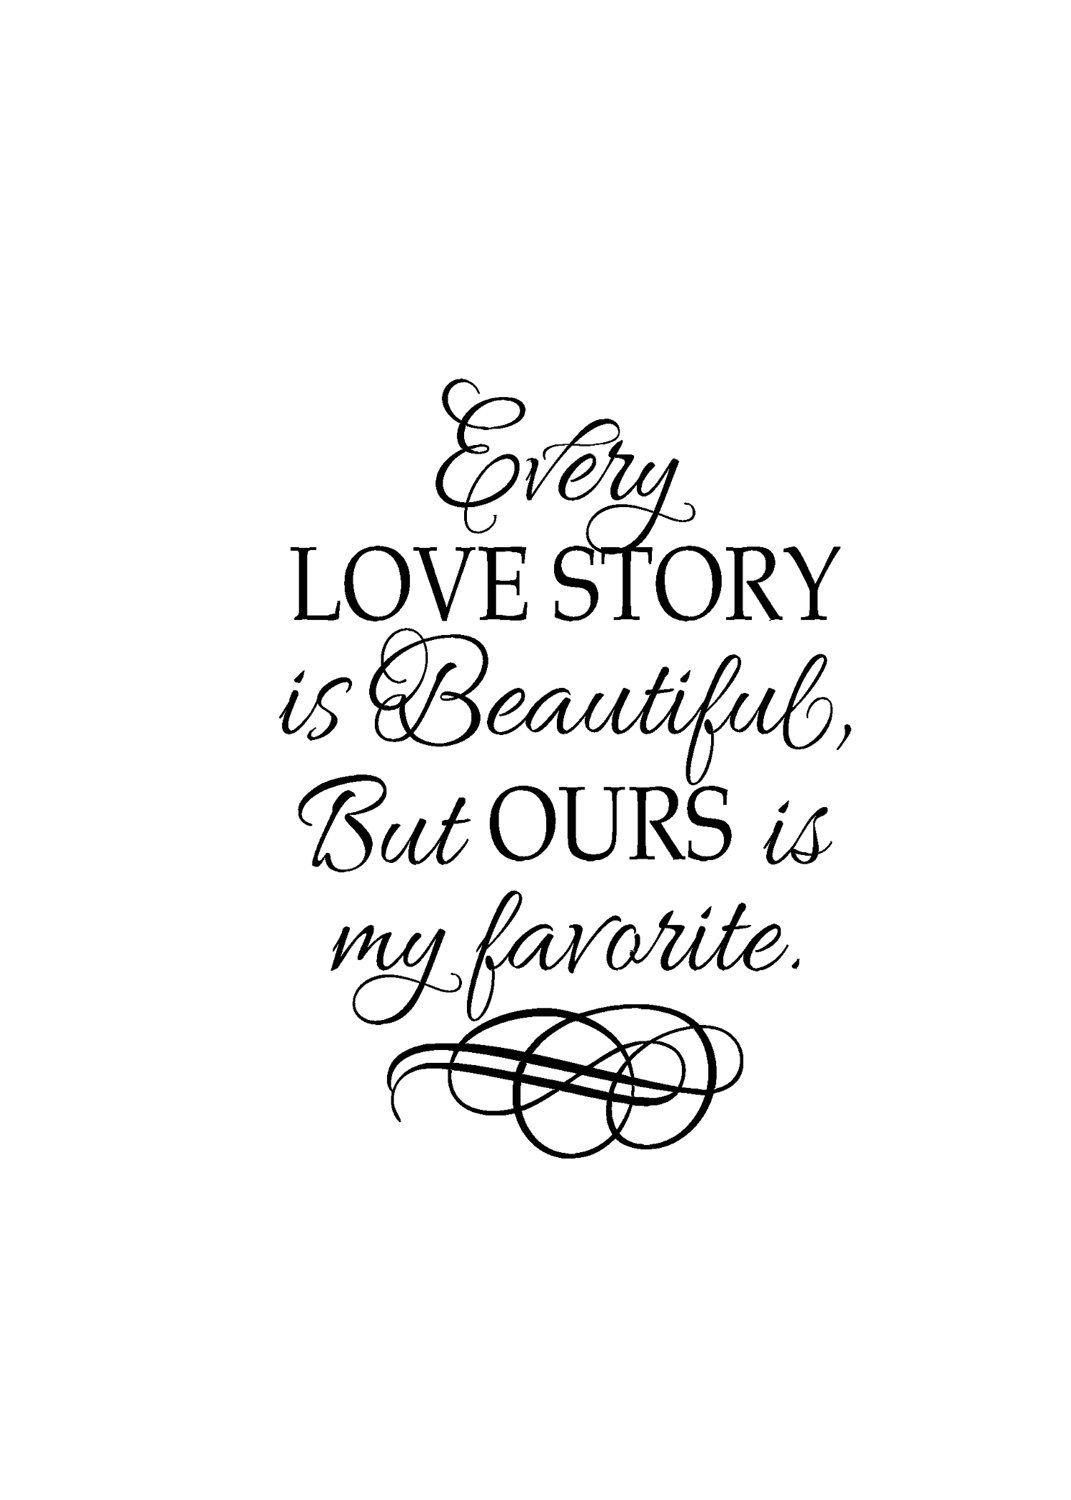 Wedding Love Quotes Every Love Story Is Beautiful But Ours Is My Favorite.going To